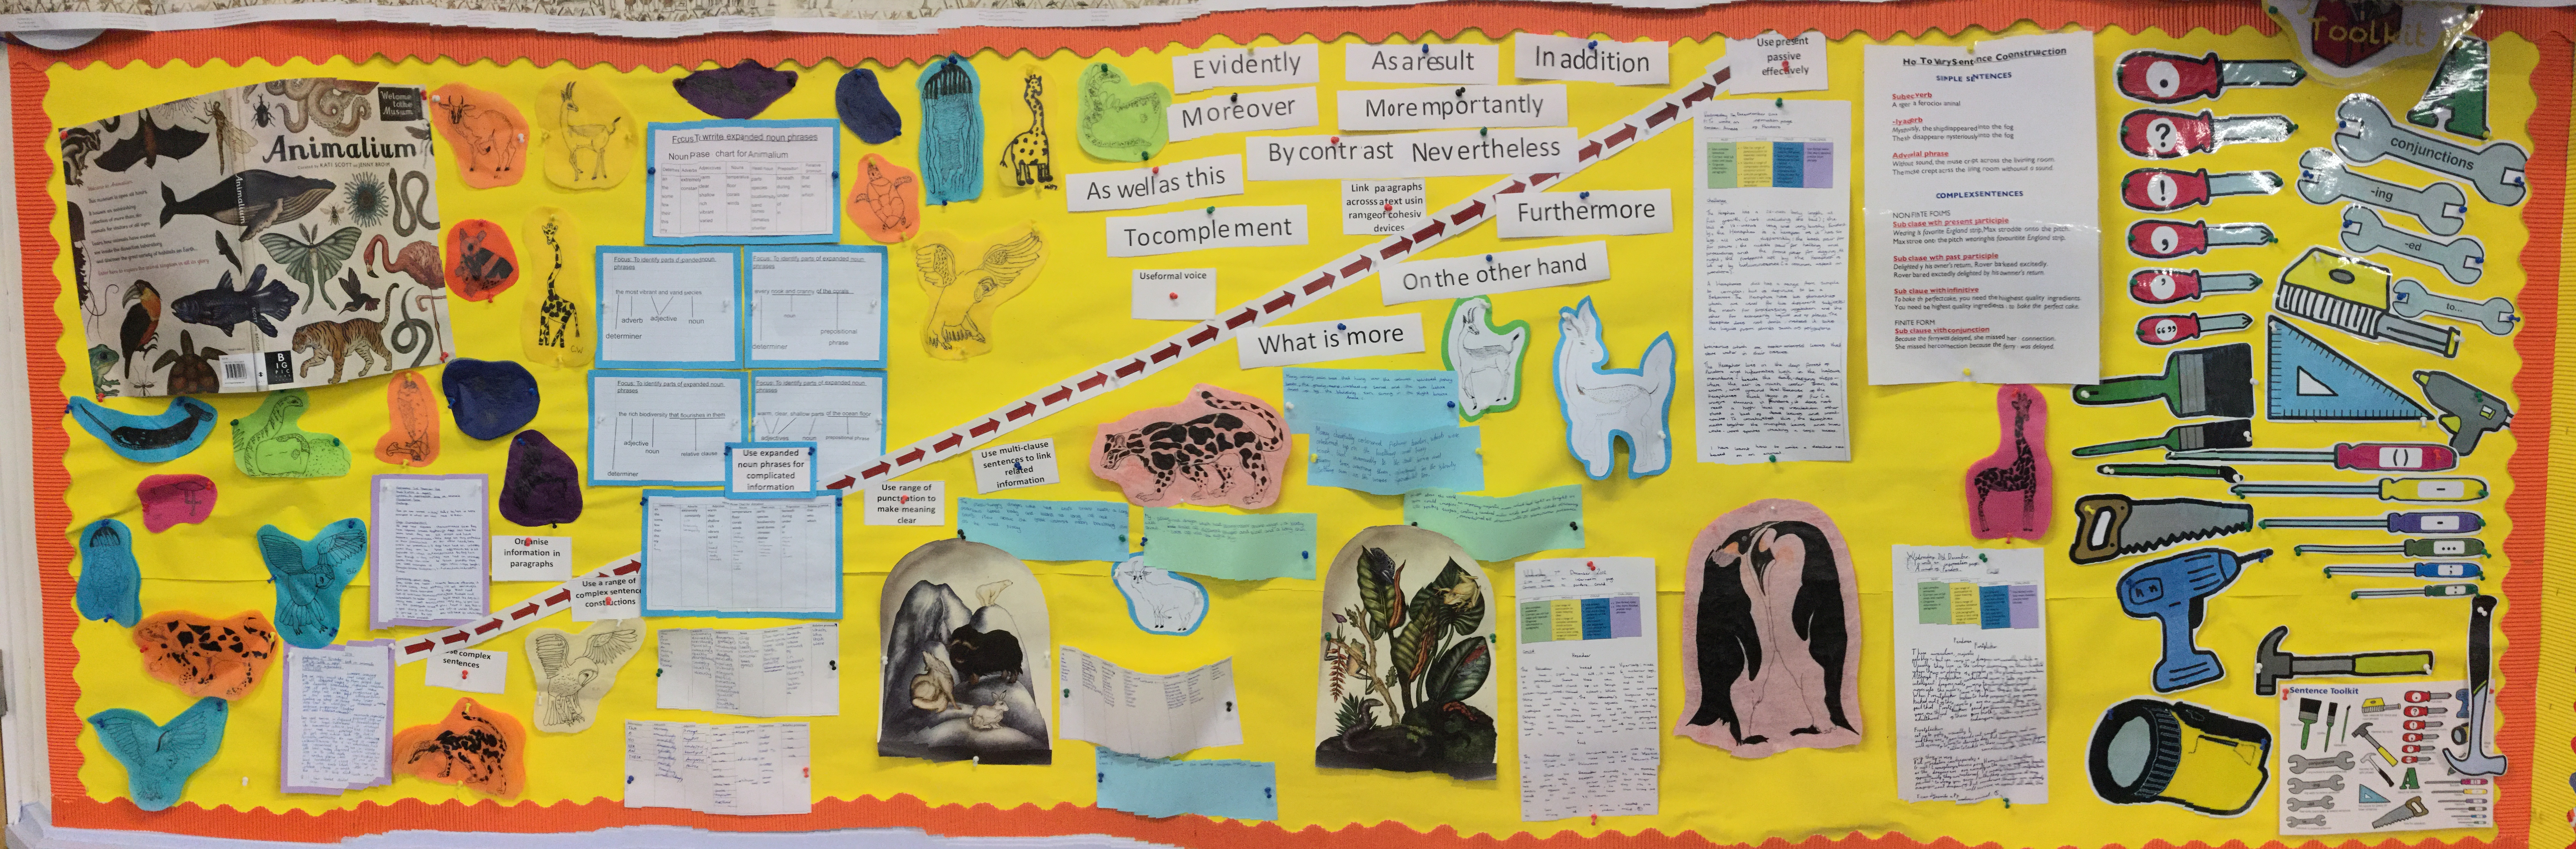 Babcock, Example of a working wall on 'Animalium' by Jenny Bloom and Katie Scott. Thanks to Stokenham Area Primary School for sharing.